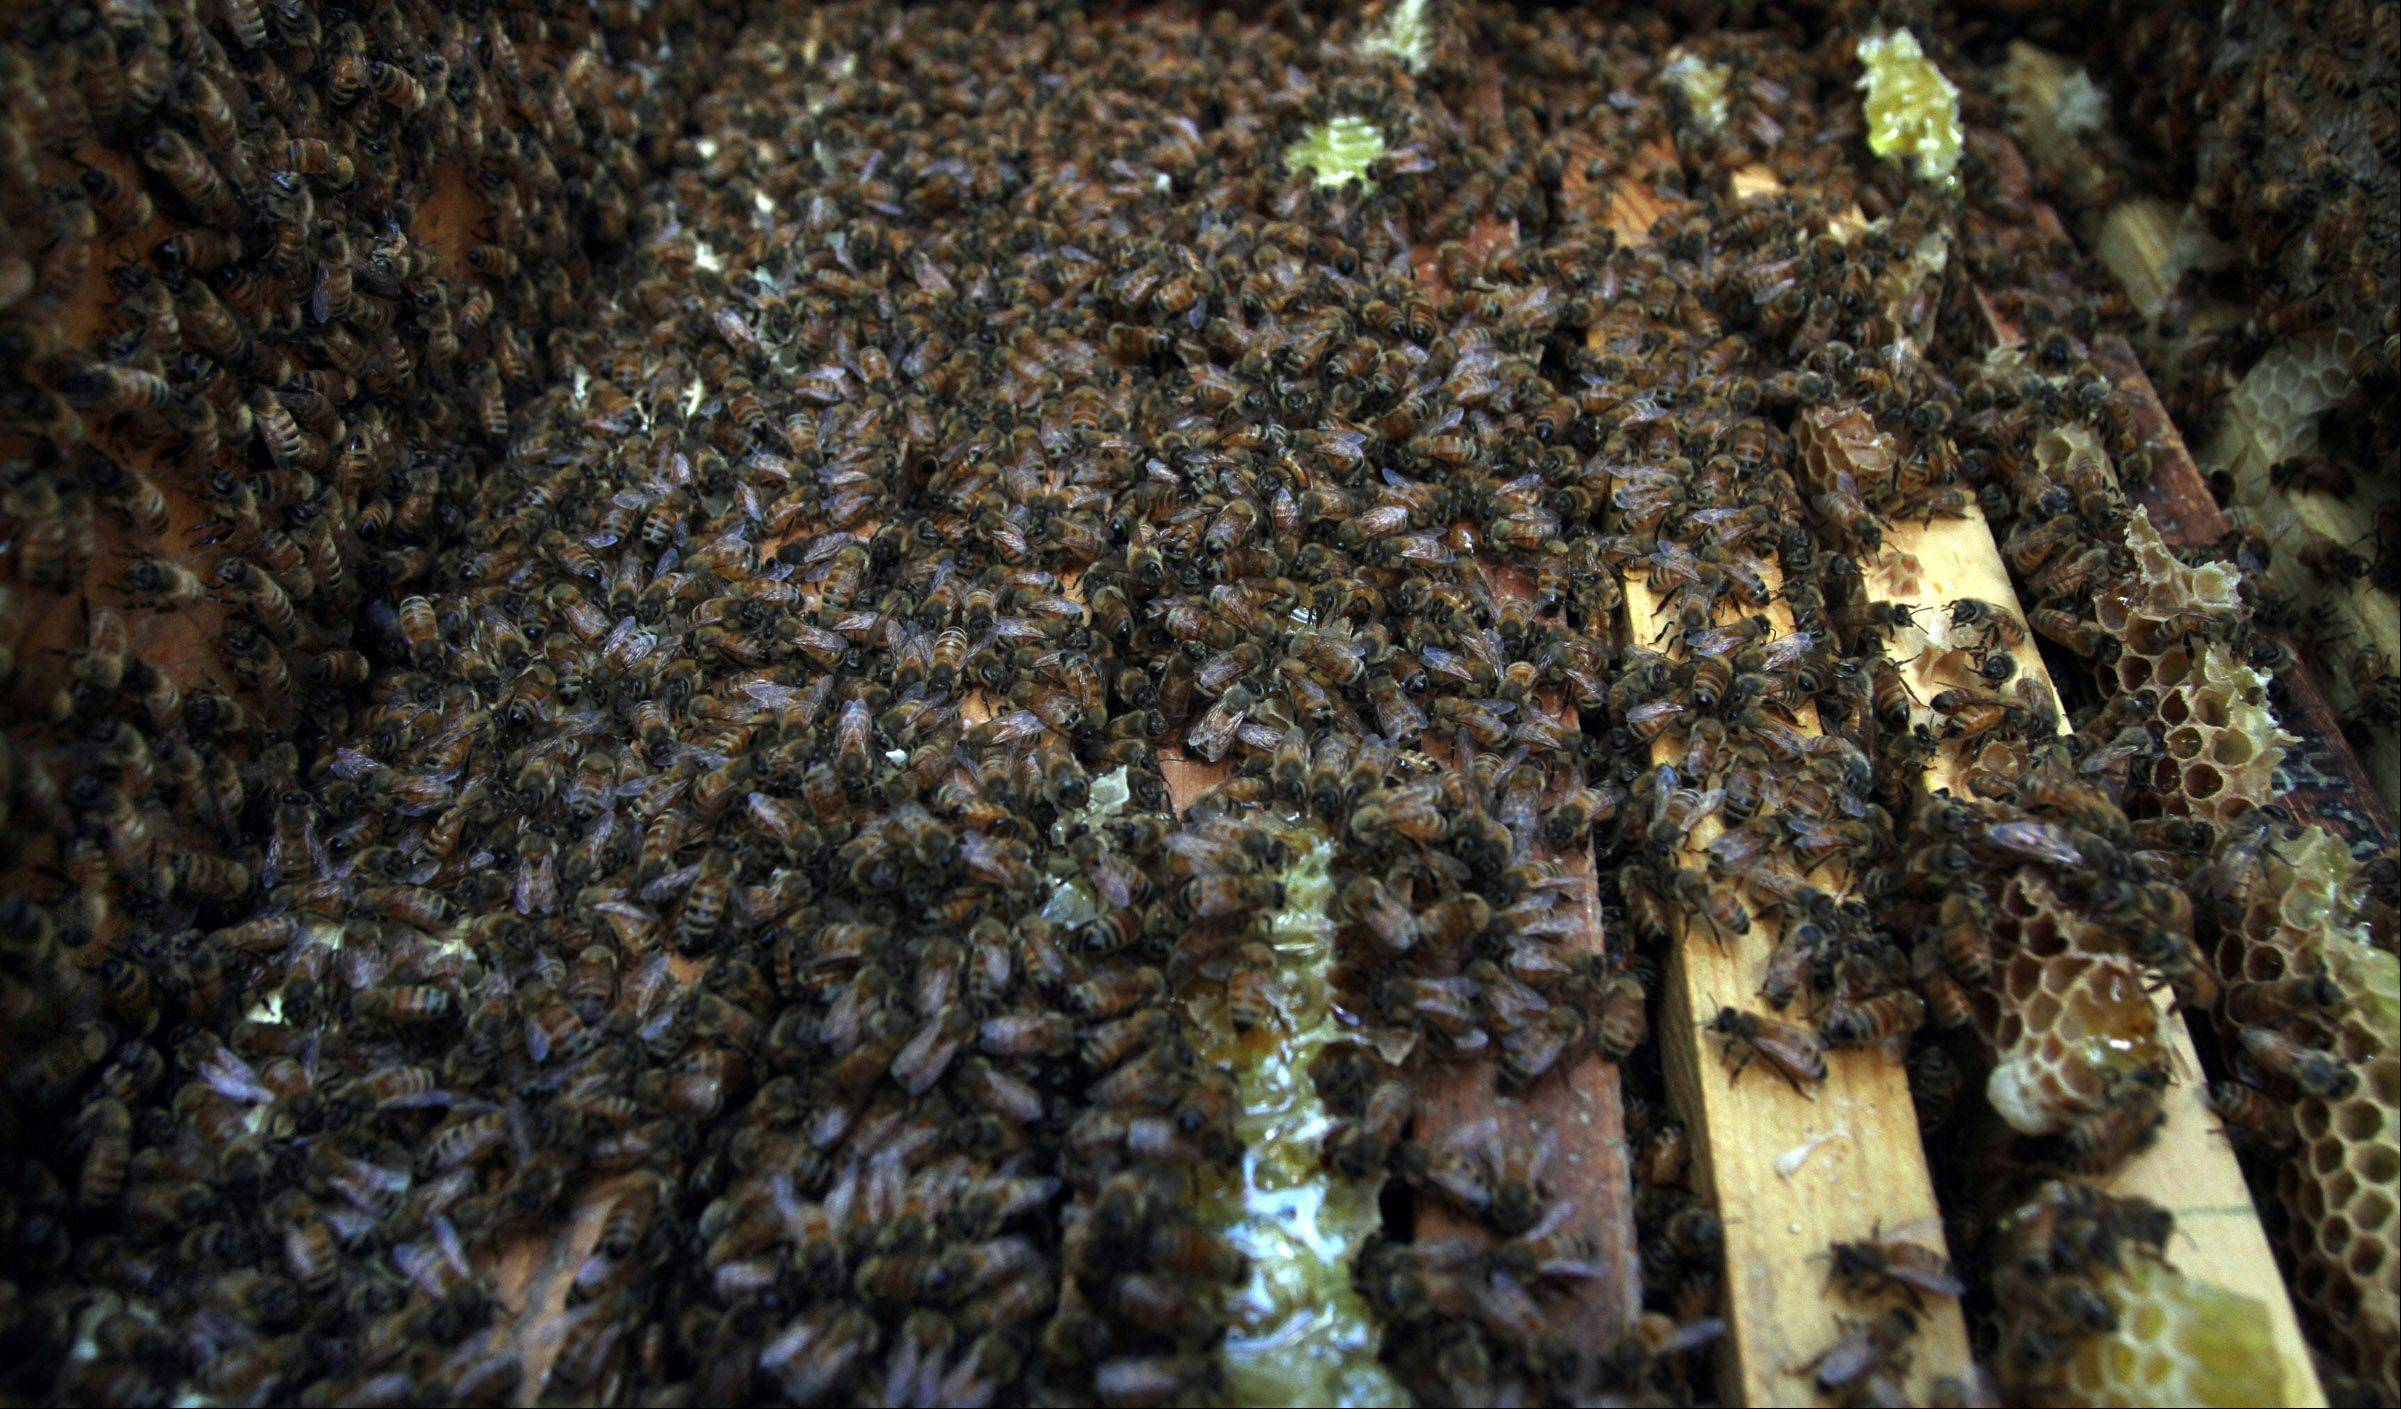 More than 1 millions bees produce honey at the O'Hare International Airport apiary.